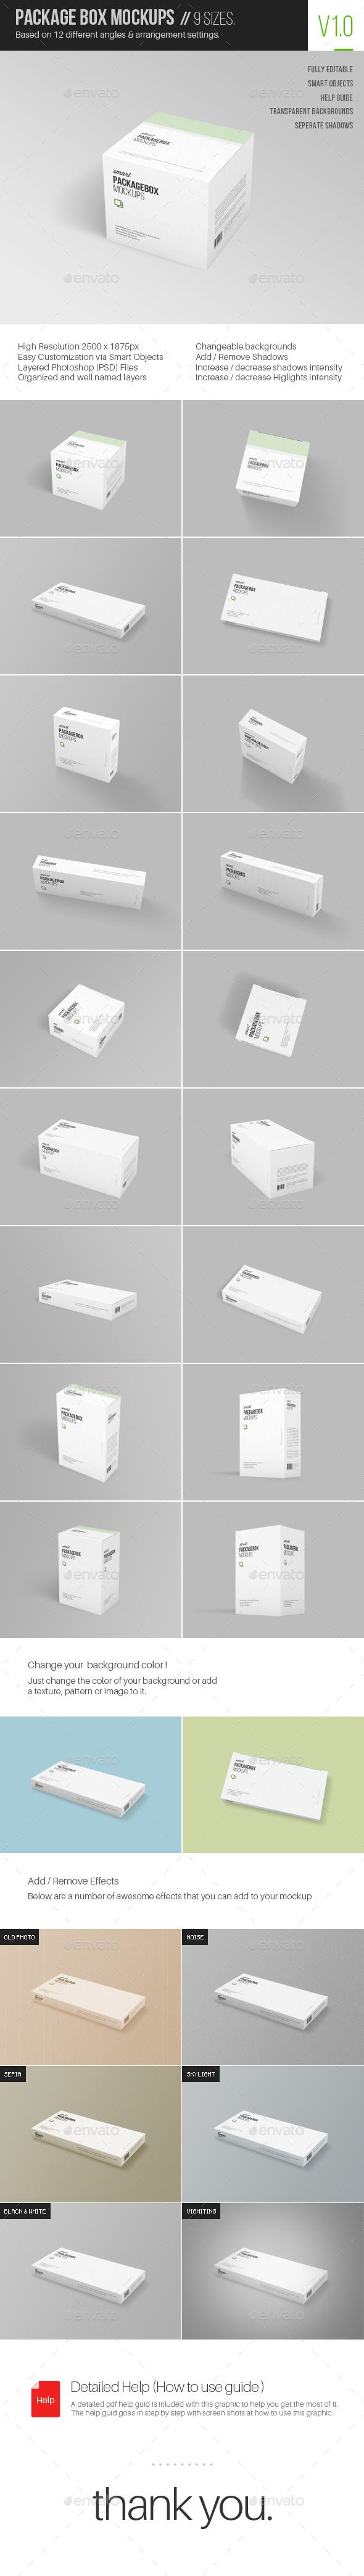 Package Box Mockups #package #mockup #design Download: http://graphicriver.net/item/package-box-mockups/10677855?ref=ksioks